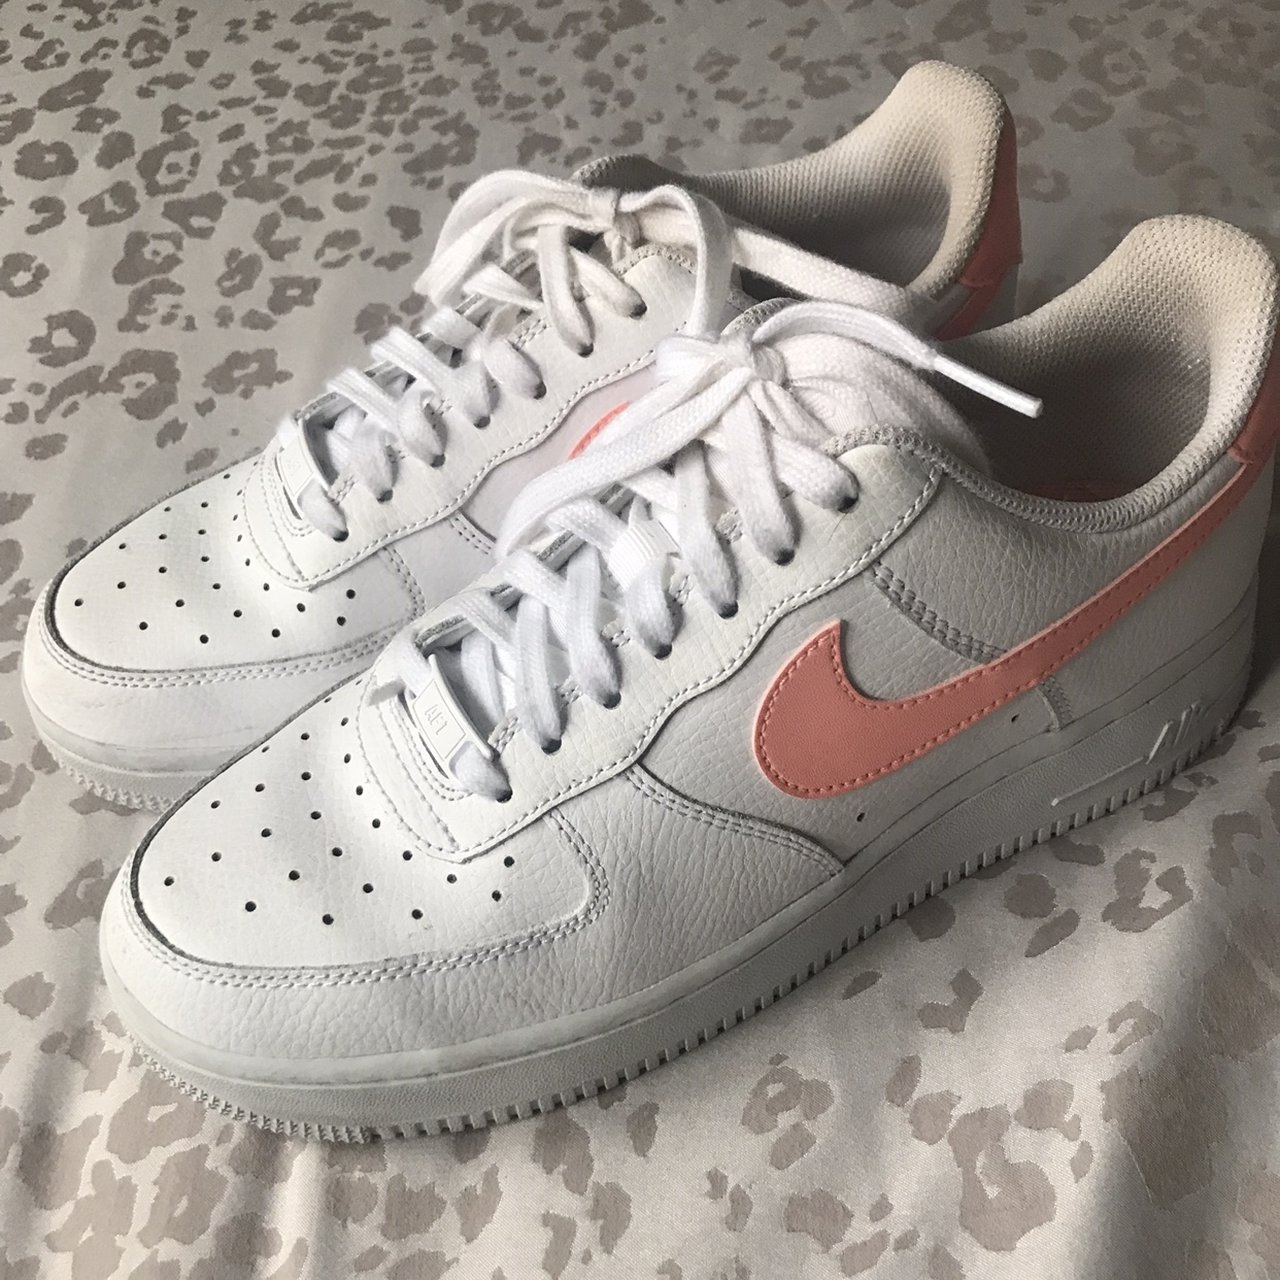 514f2c1cd7 10/10 condition NIKE AIRFORCE 1 with peach tick. Worn a of a - Depop